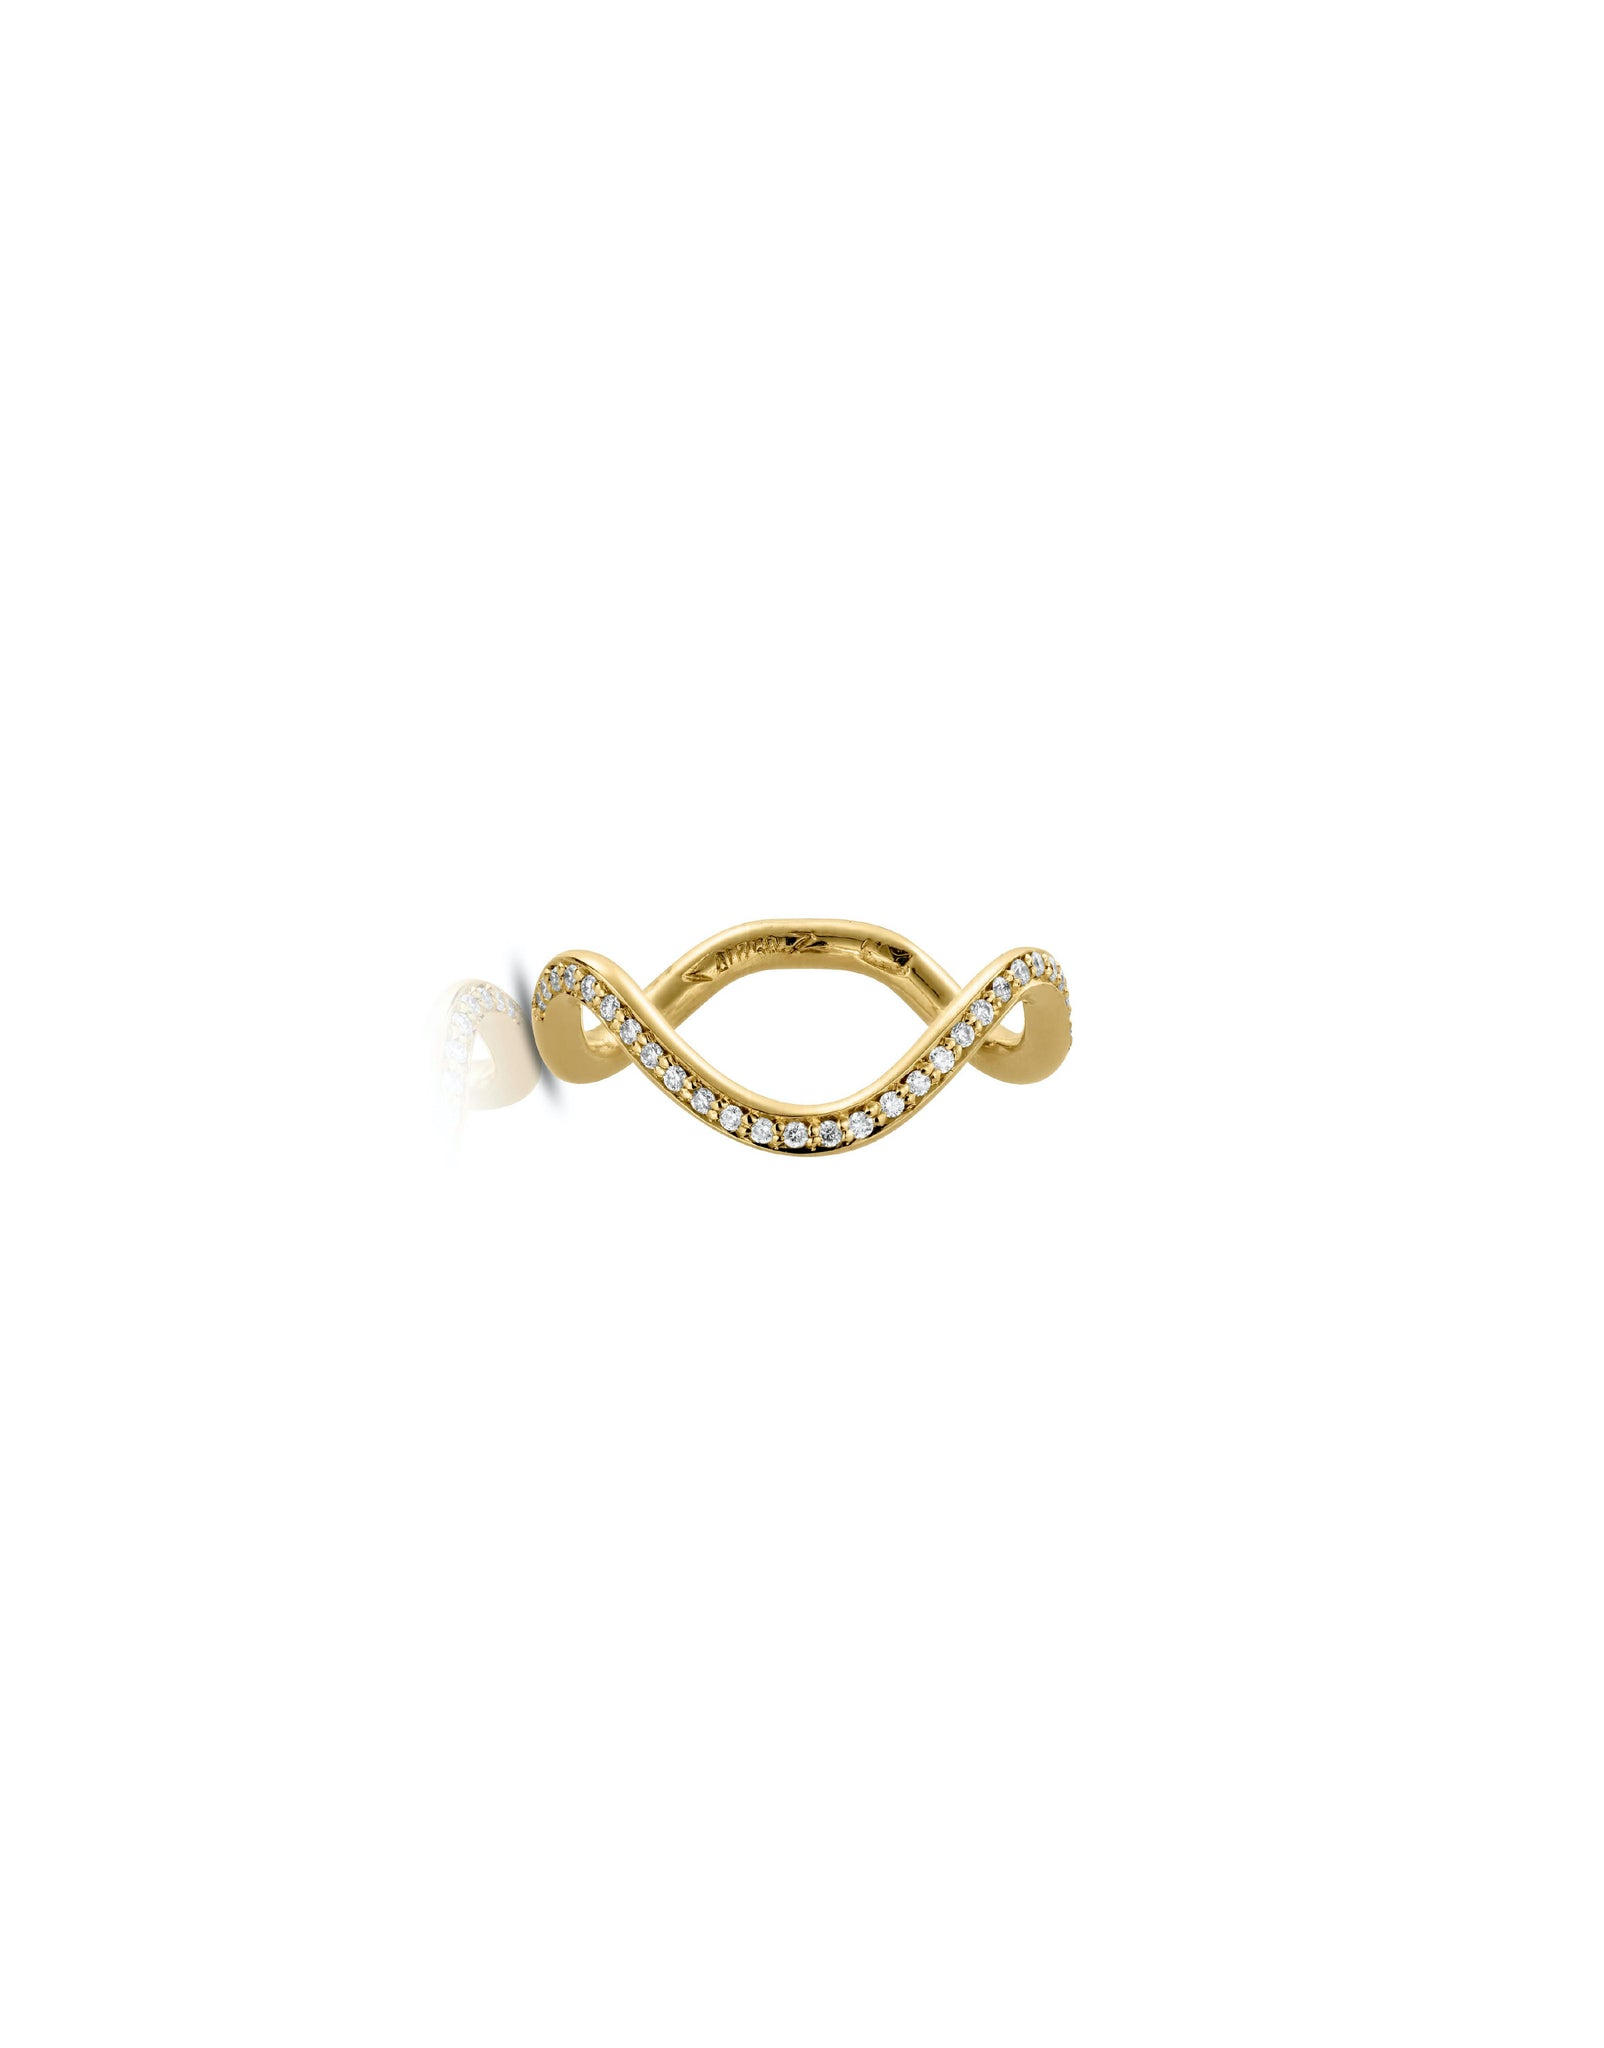 Ring 18K gold diamonds - Petite comete ring diamonds - Nayestones